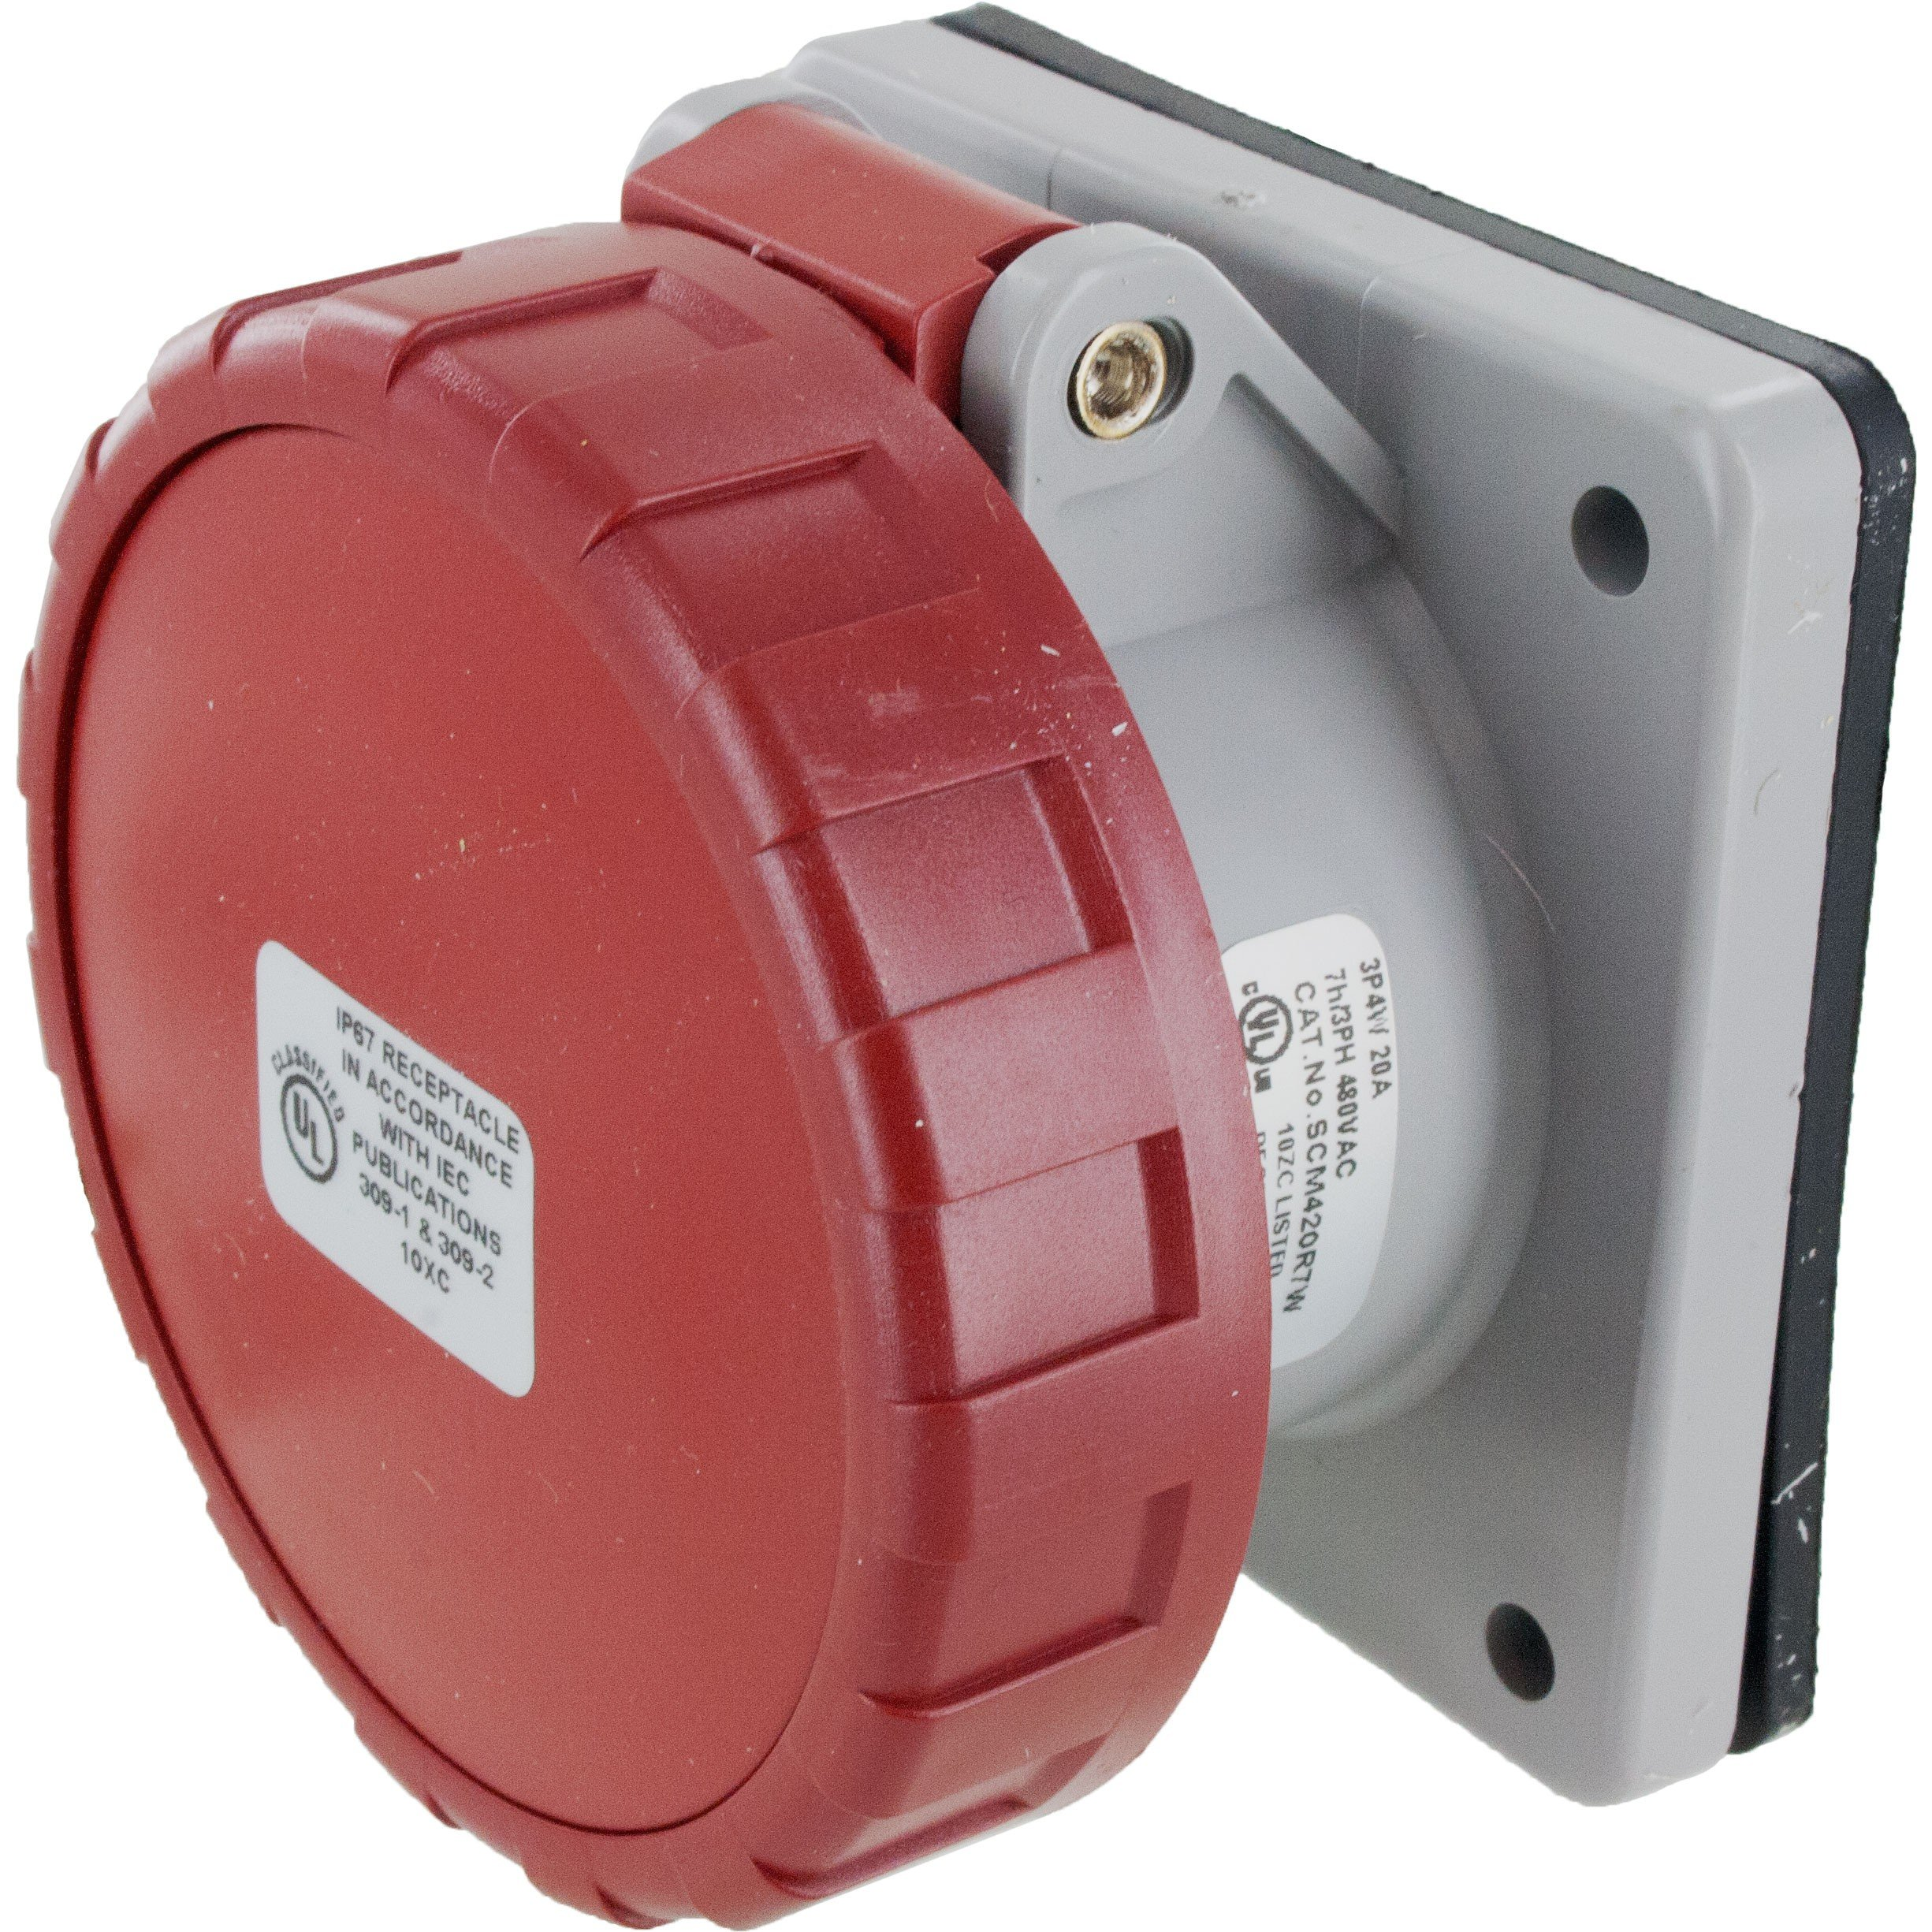 420R7W Pin And Sleeve Receptacle 20 Amp 3 Pole 4 Wire